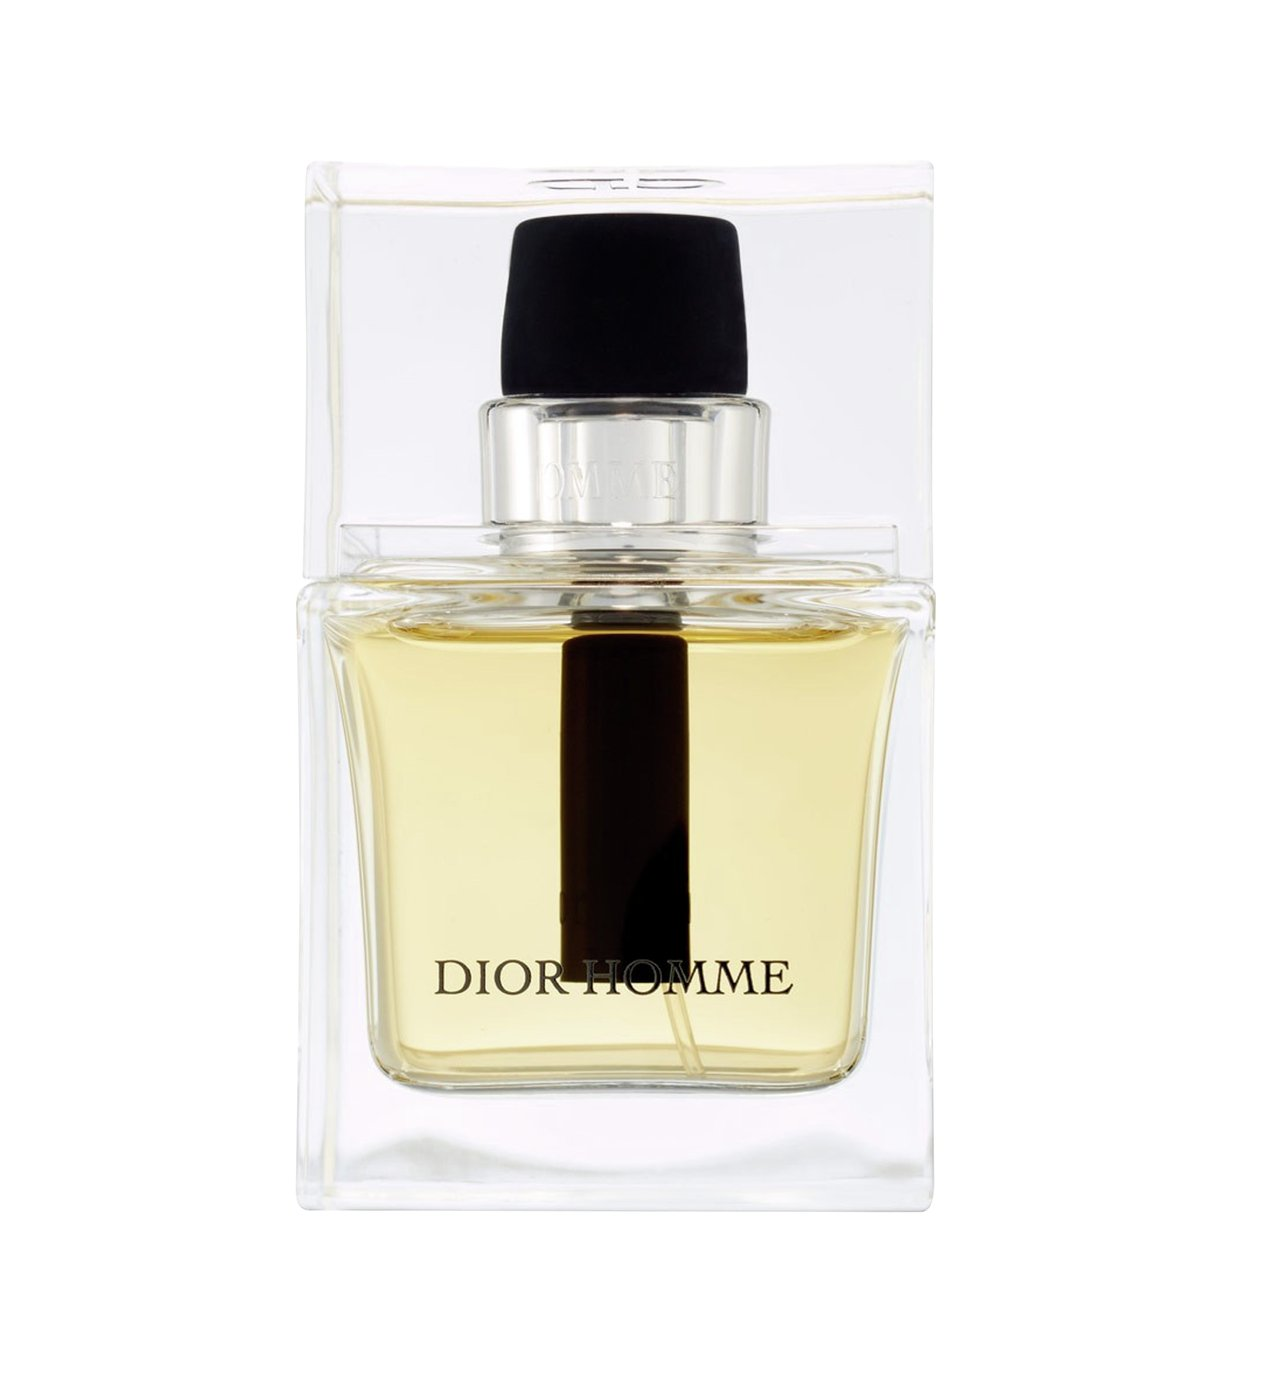 Christian Dior Homme Men's Eau de Toilette - 50ml